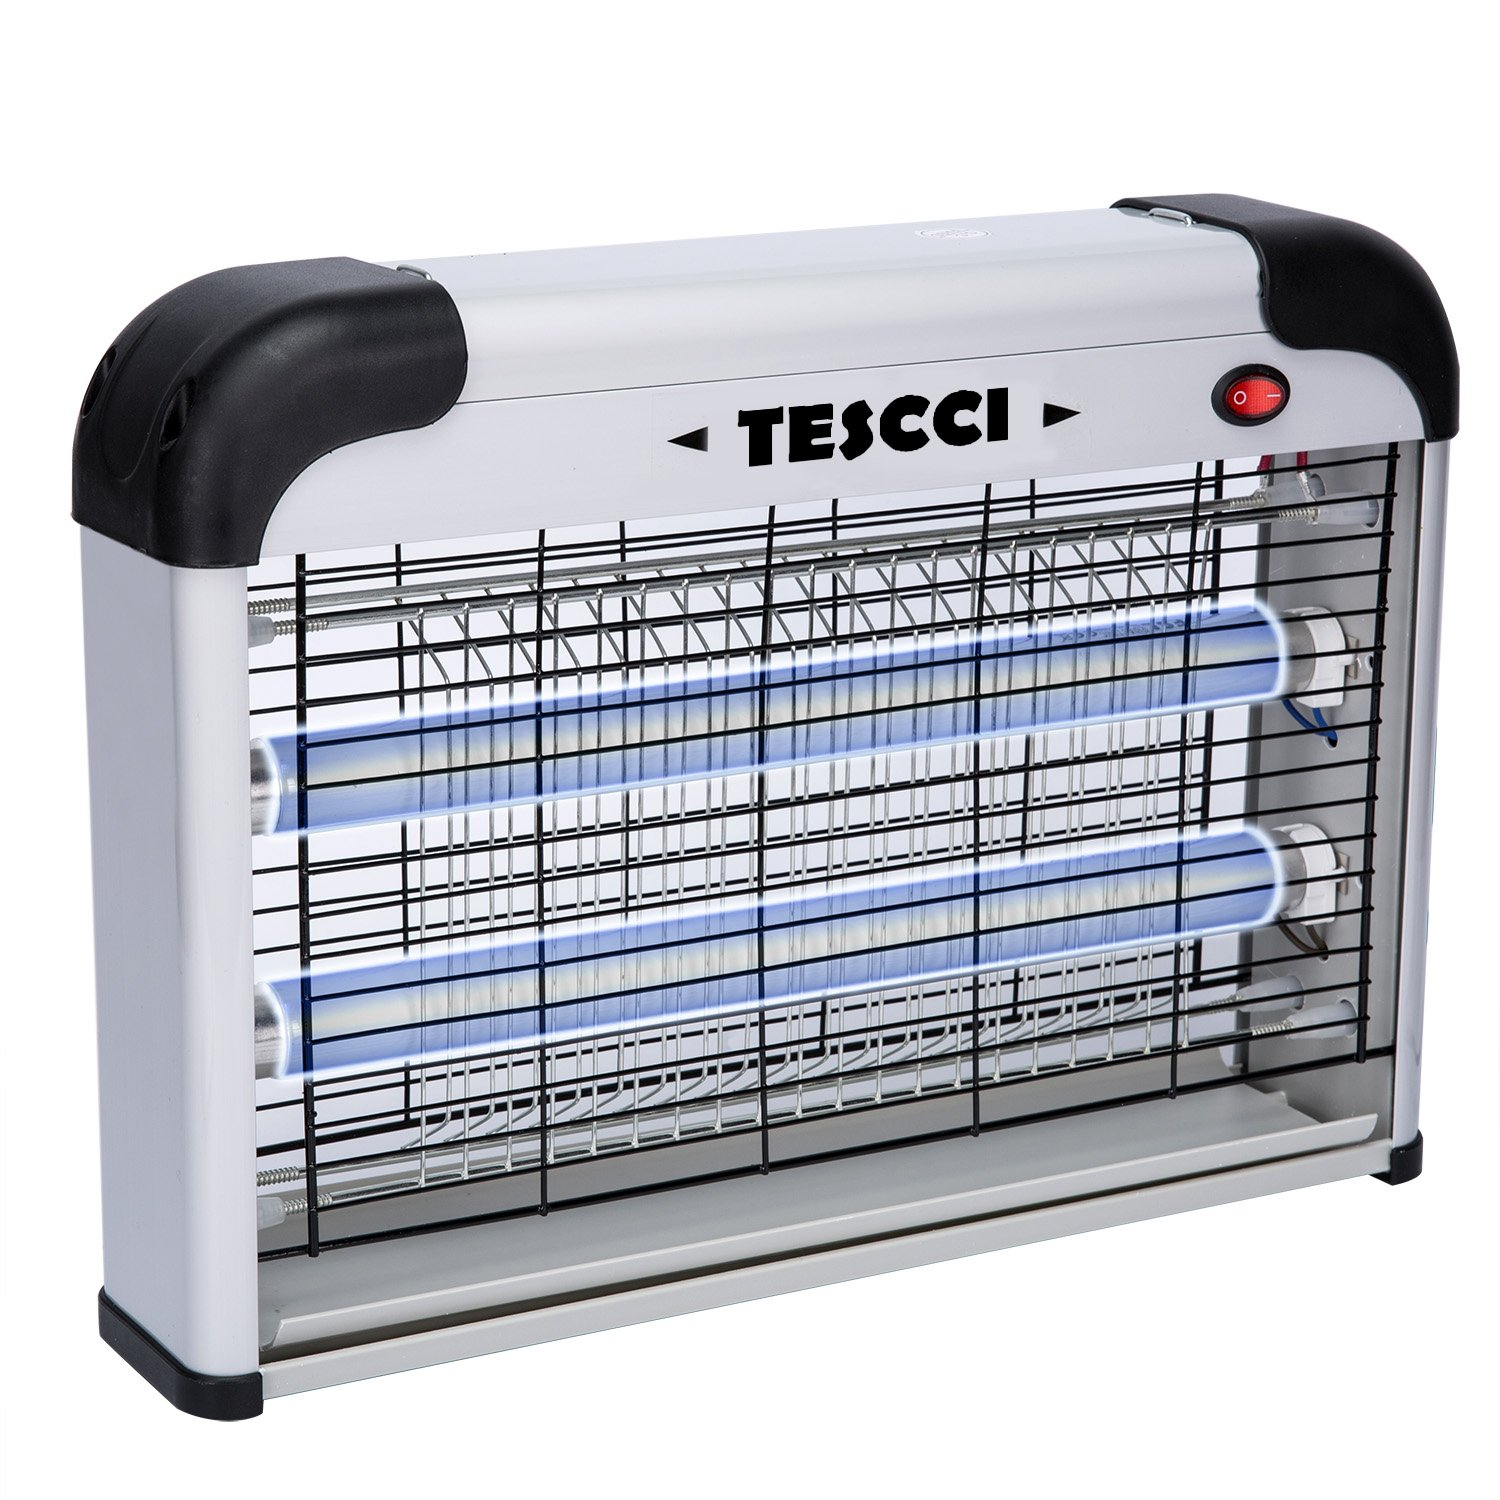 TESCCI 20W Electronic Bug Zapper